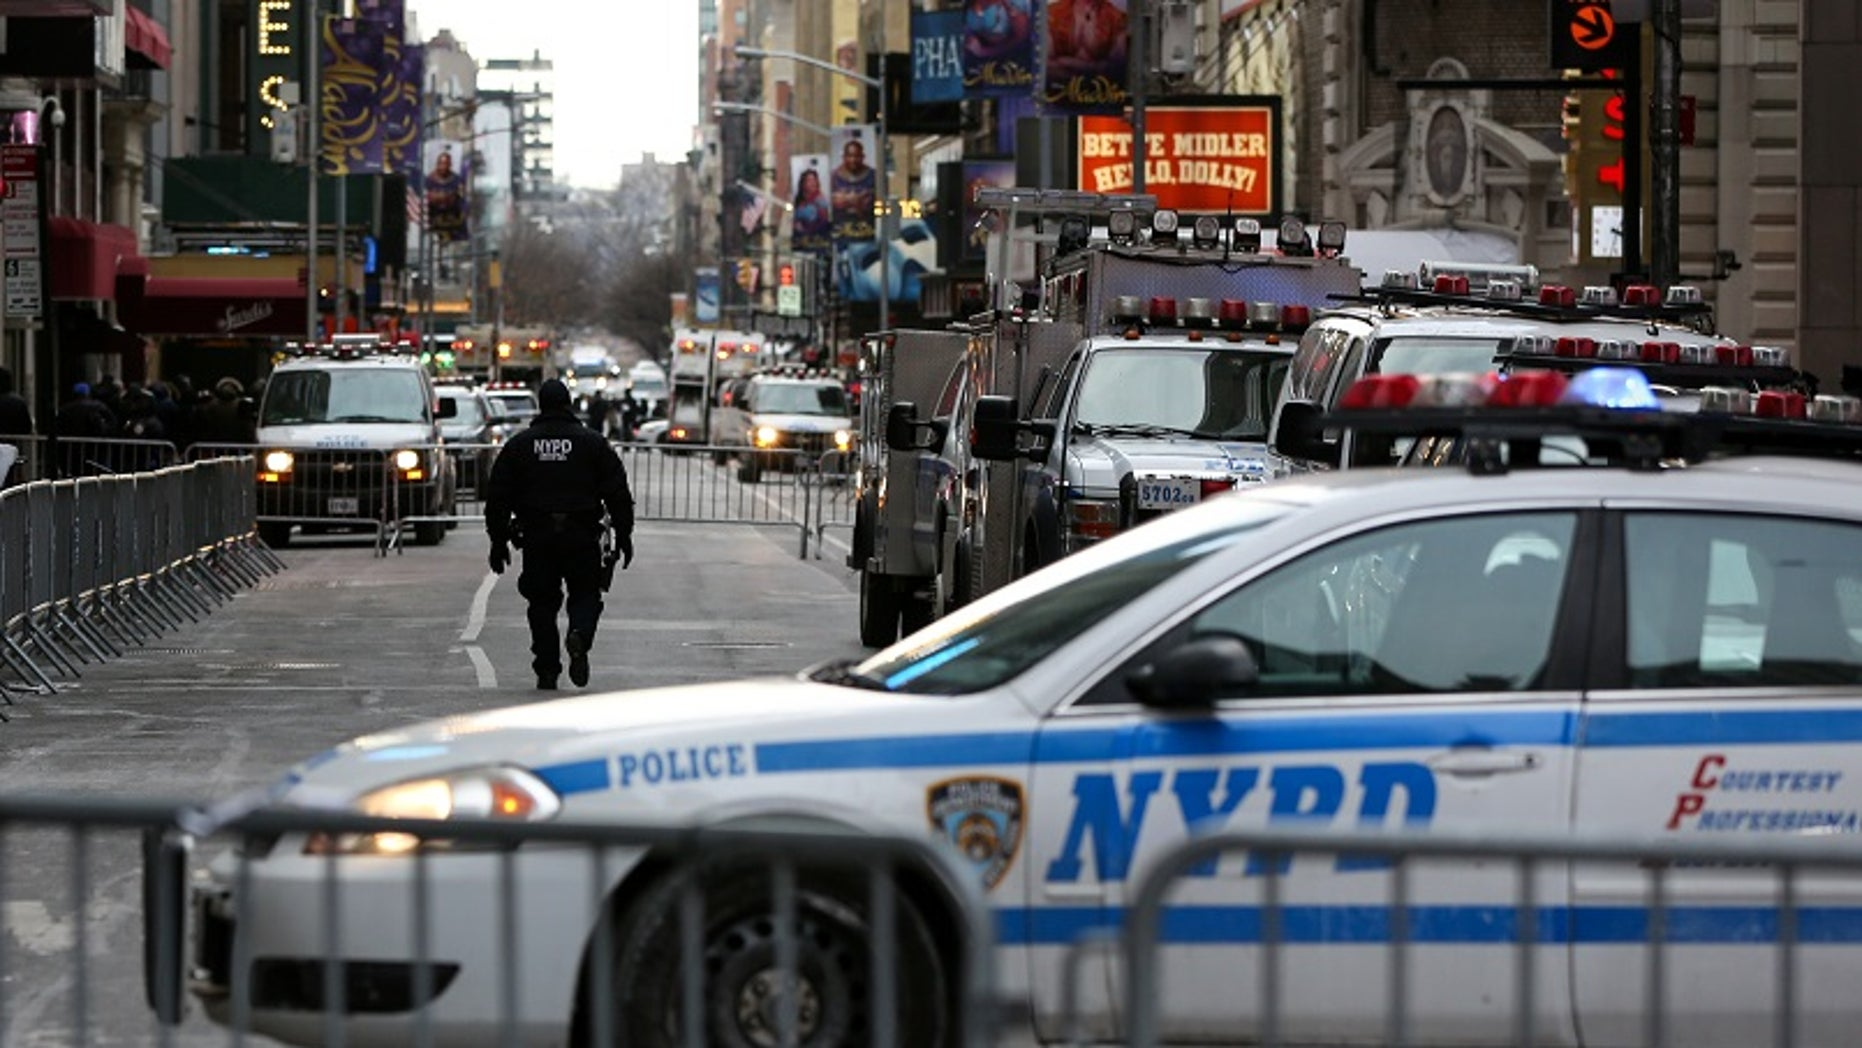 New York Police Department (NYPD) officers secure Times Square ahead of New Year's Eve celebrations, Dec. 31, 2017.